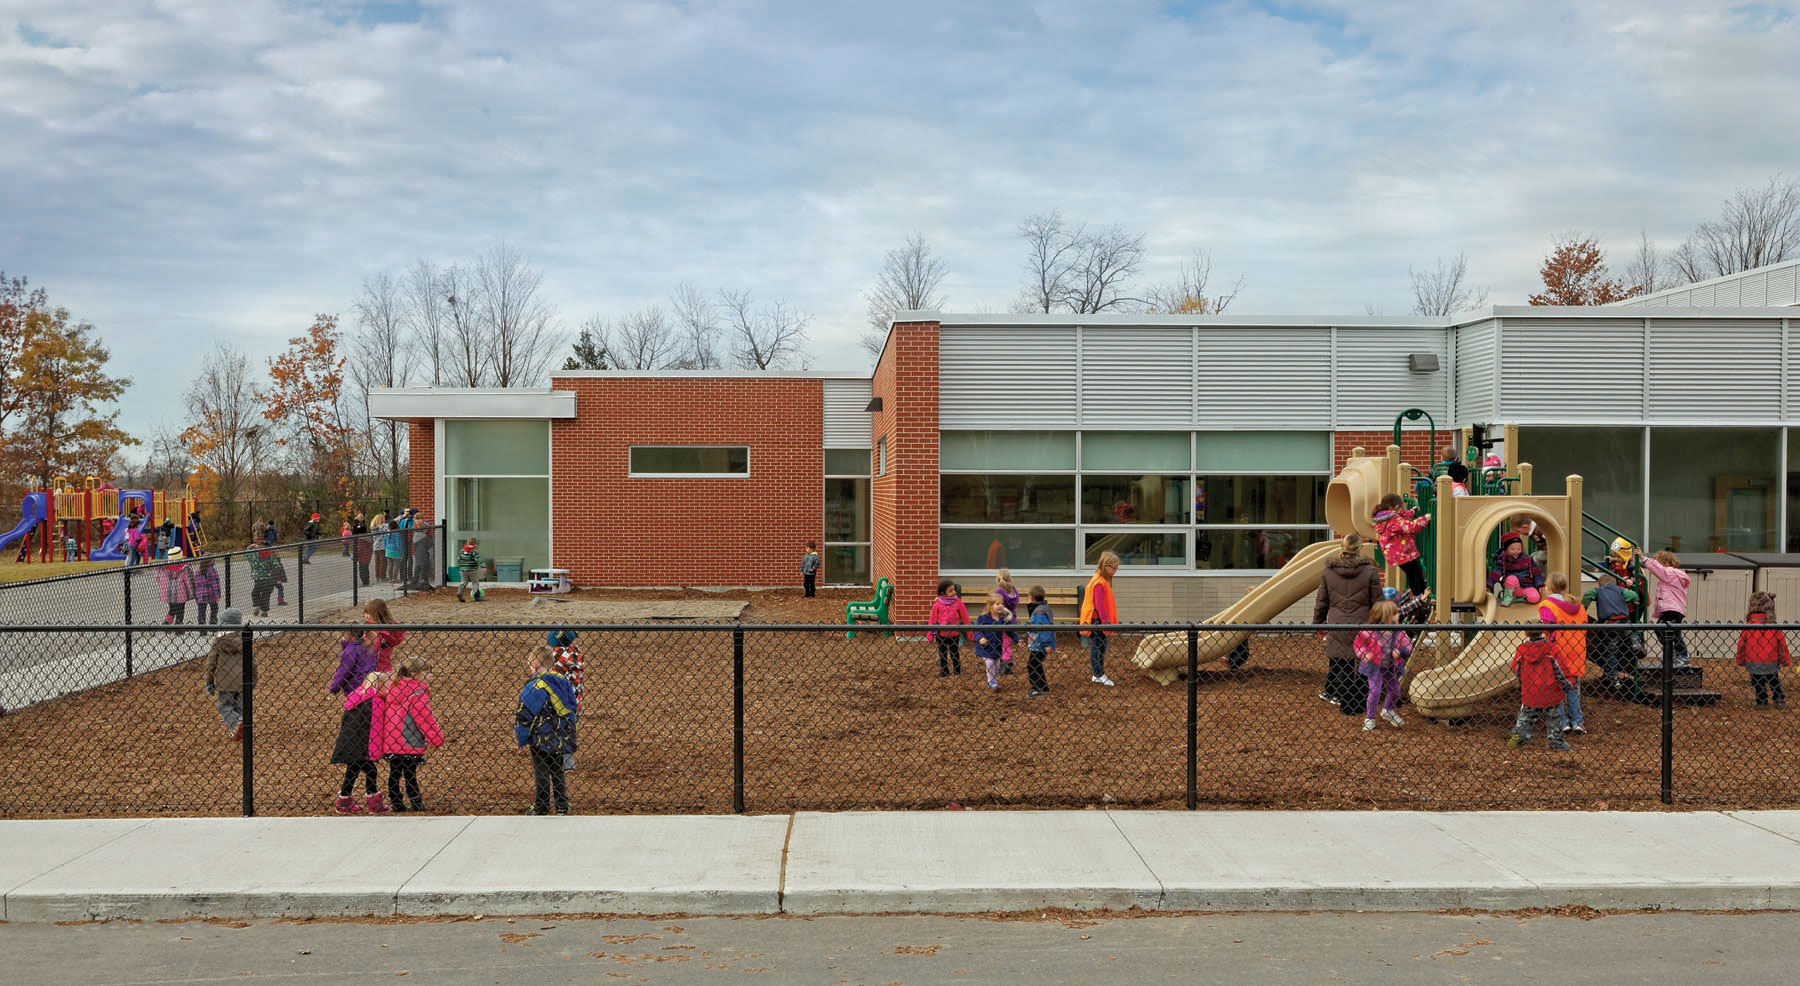 Students playing on playground at recess with elevation of school in background